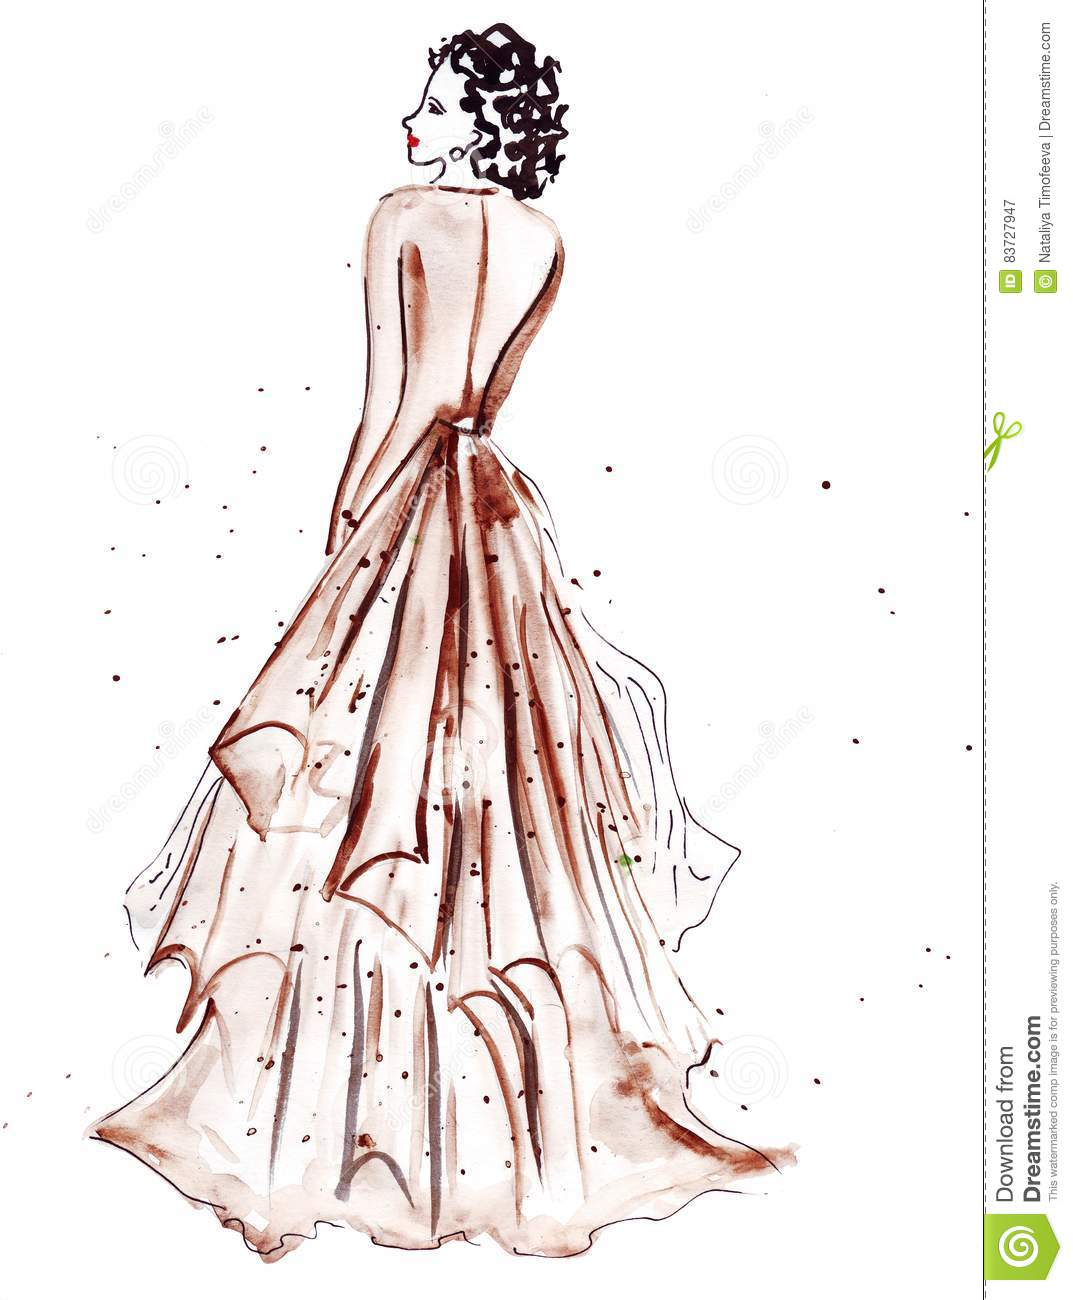 Illustration Sketch Of Female Fashion In Different Clothes Painted With Bright Acrylic Paints And Ink Black Stock Illustration Illustration Of Decorative Illustration 83727947